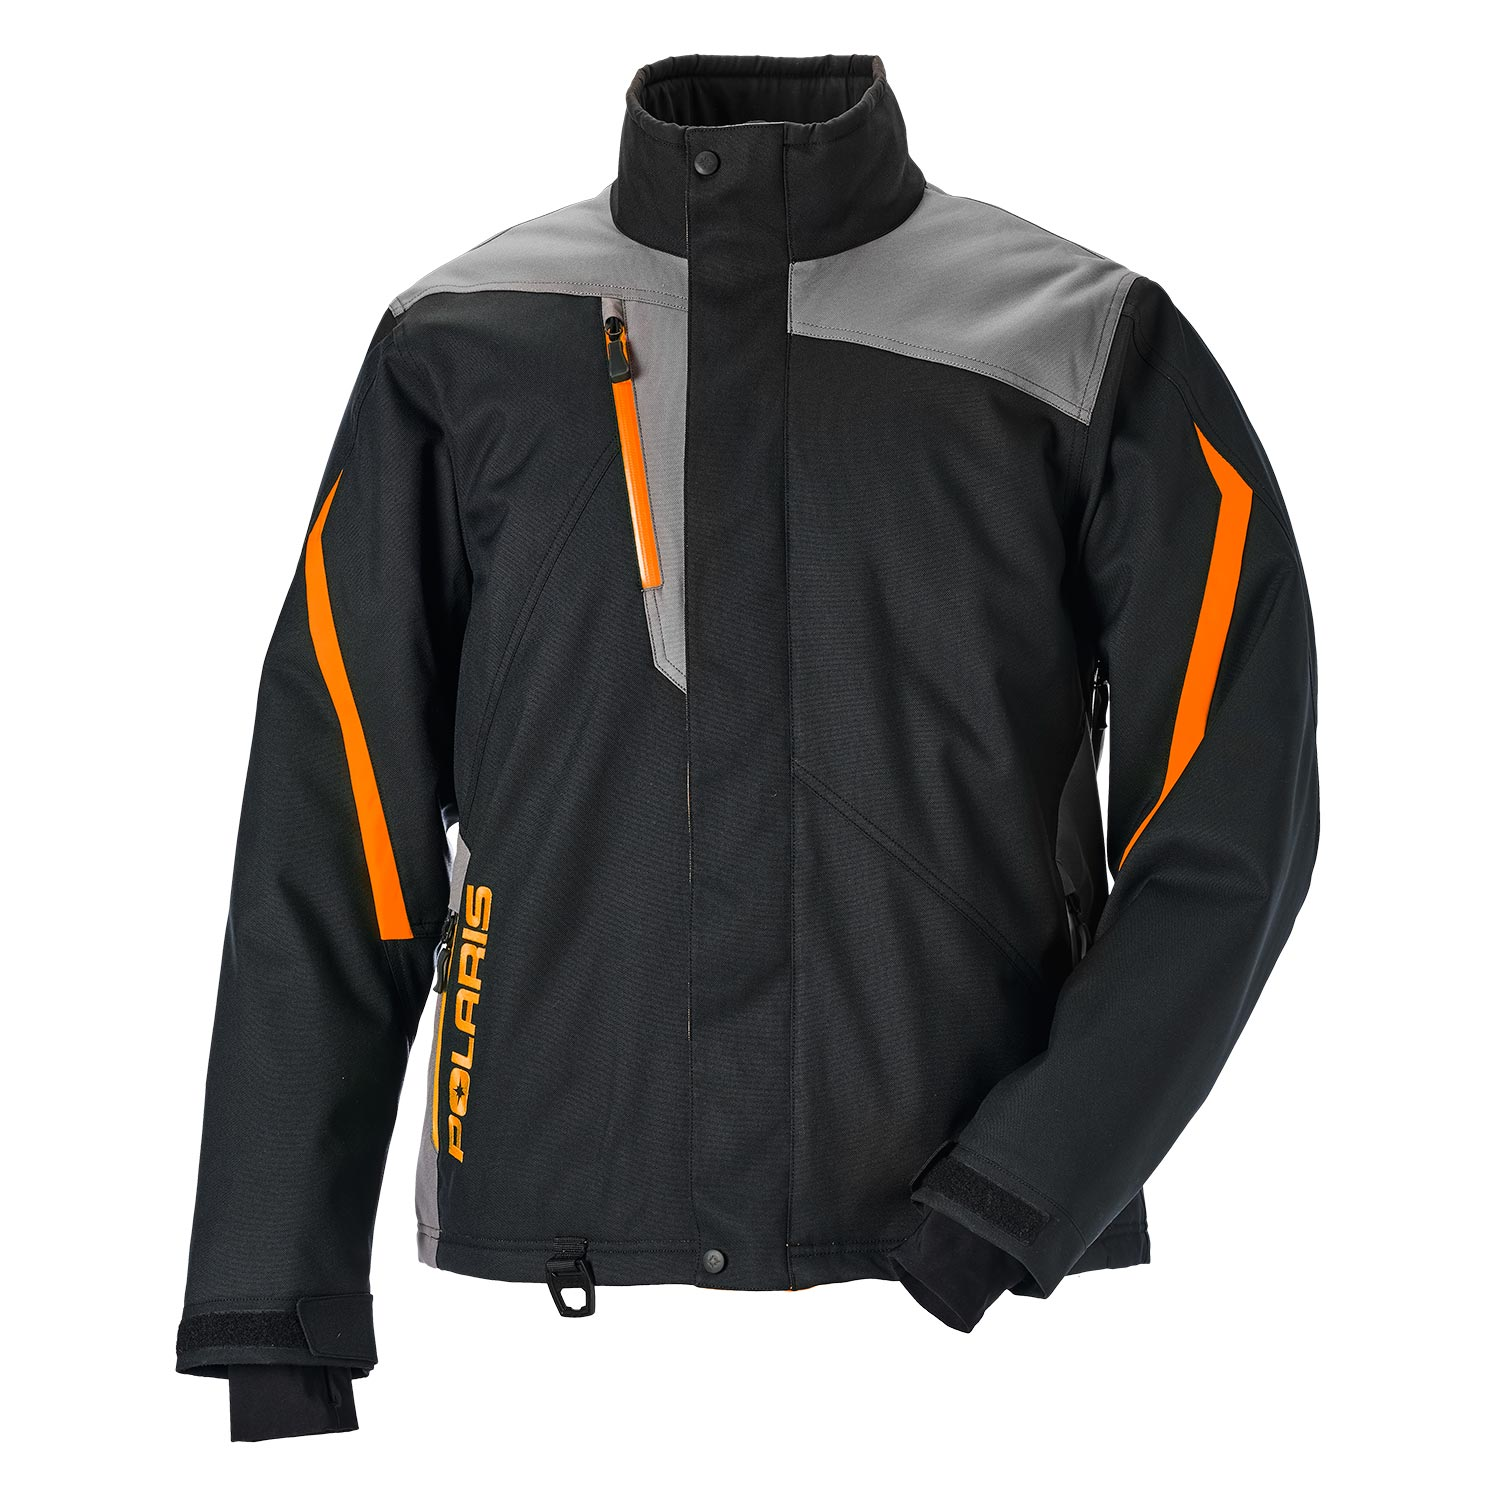 Men's Ripper Jacket - Orange